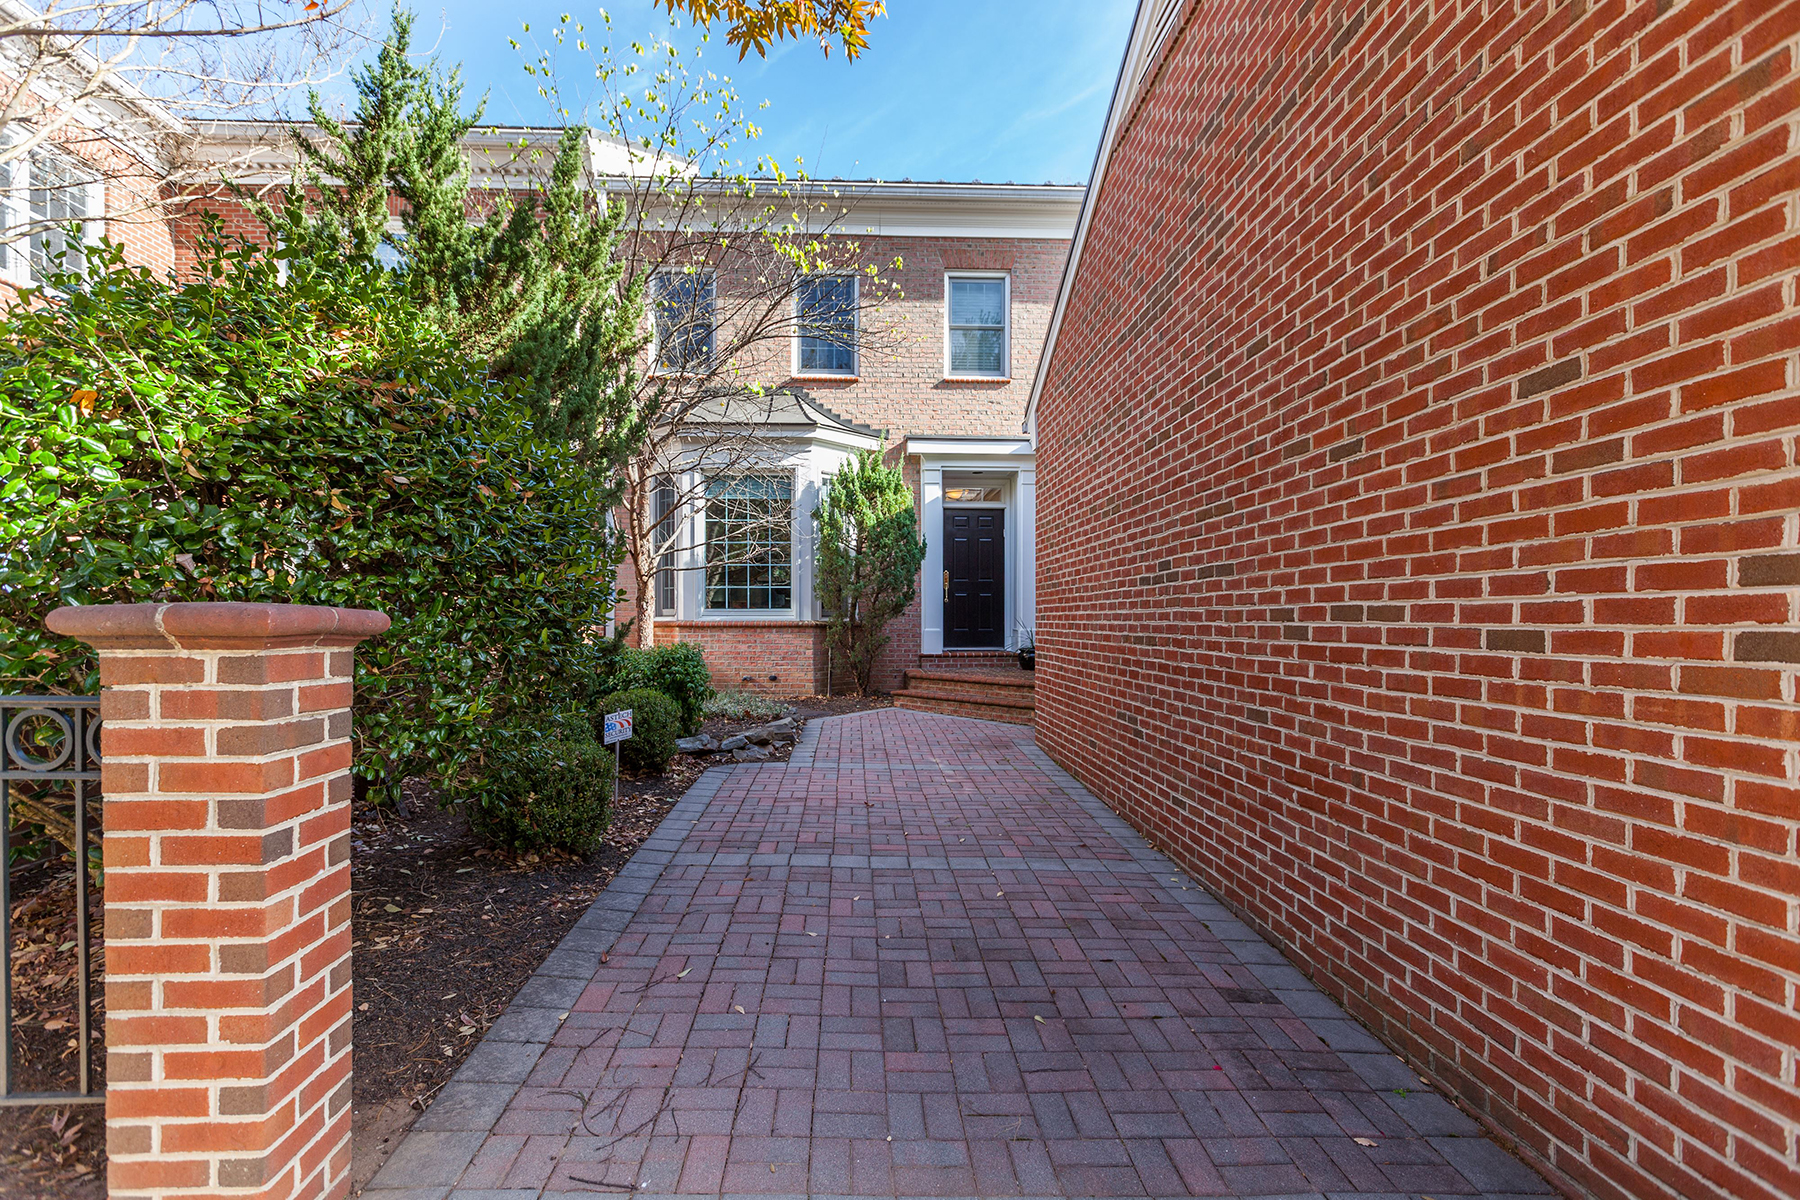 Townhouse for Sale at 10811 Hidden Trail Court, Potomac 10811 Hidden Trail Ct Potomac, Maryland, 20854 United States